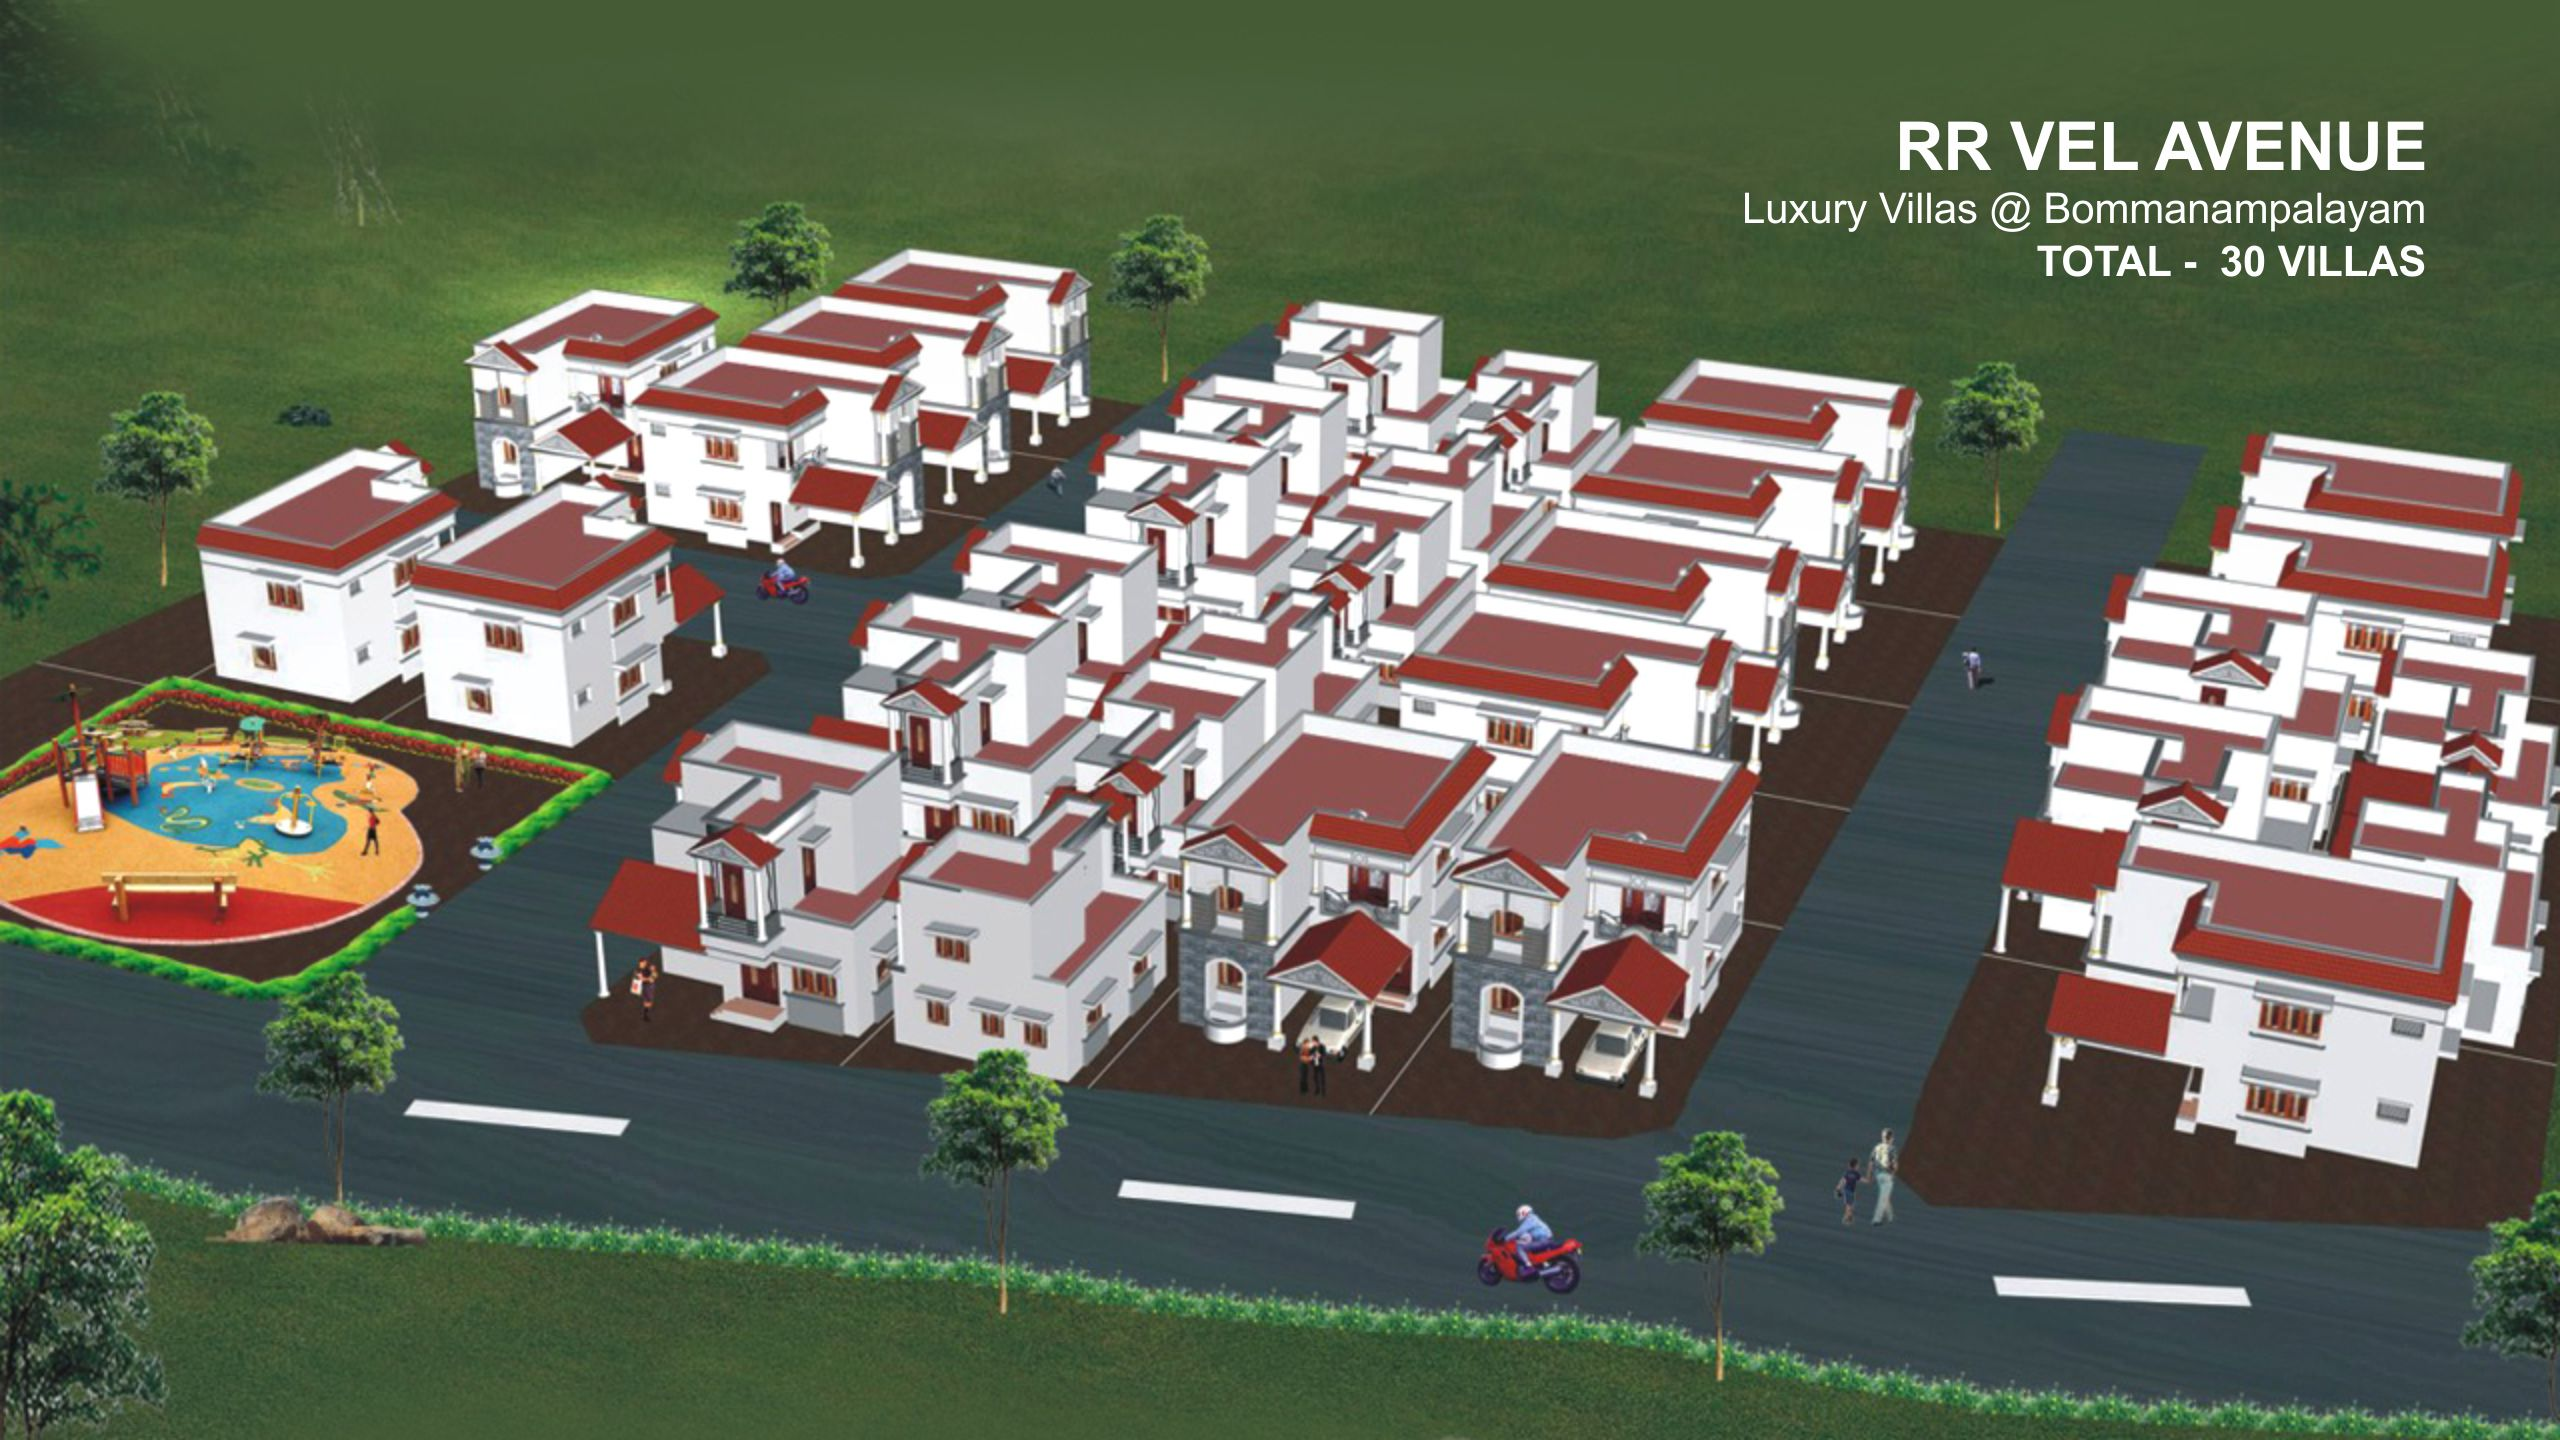 RR VEL AVENUE - Completed